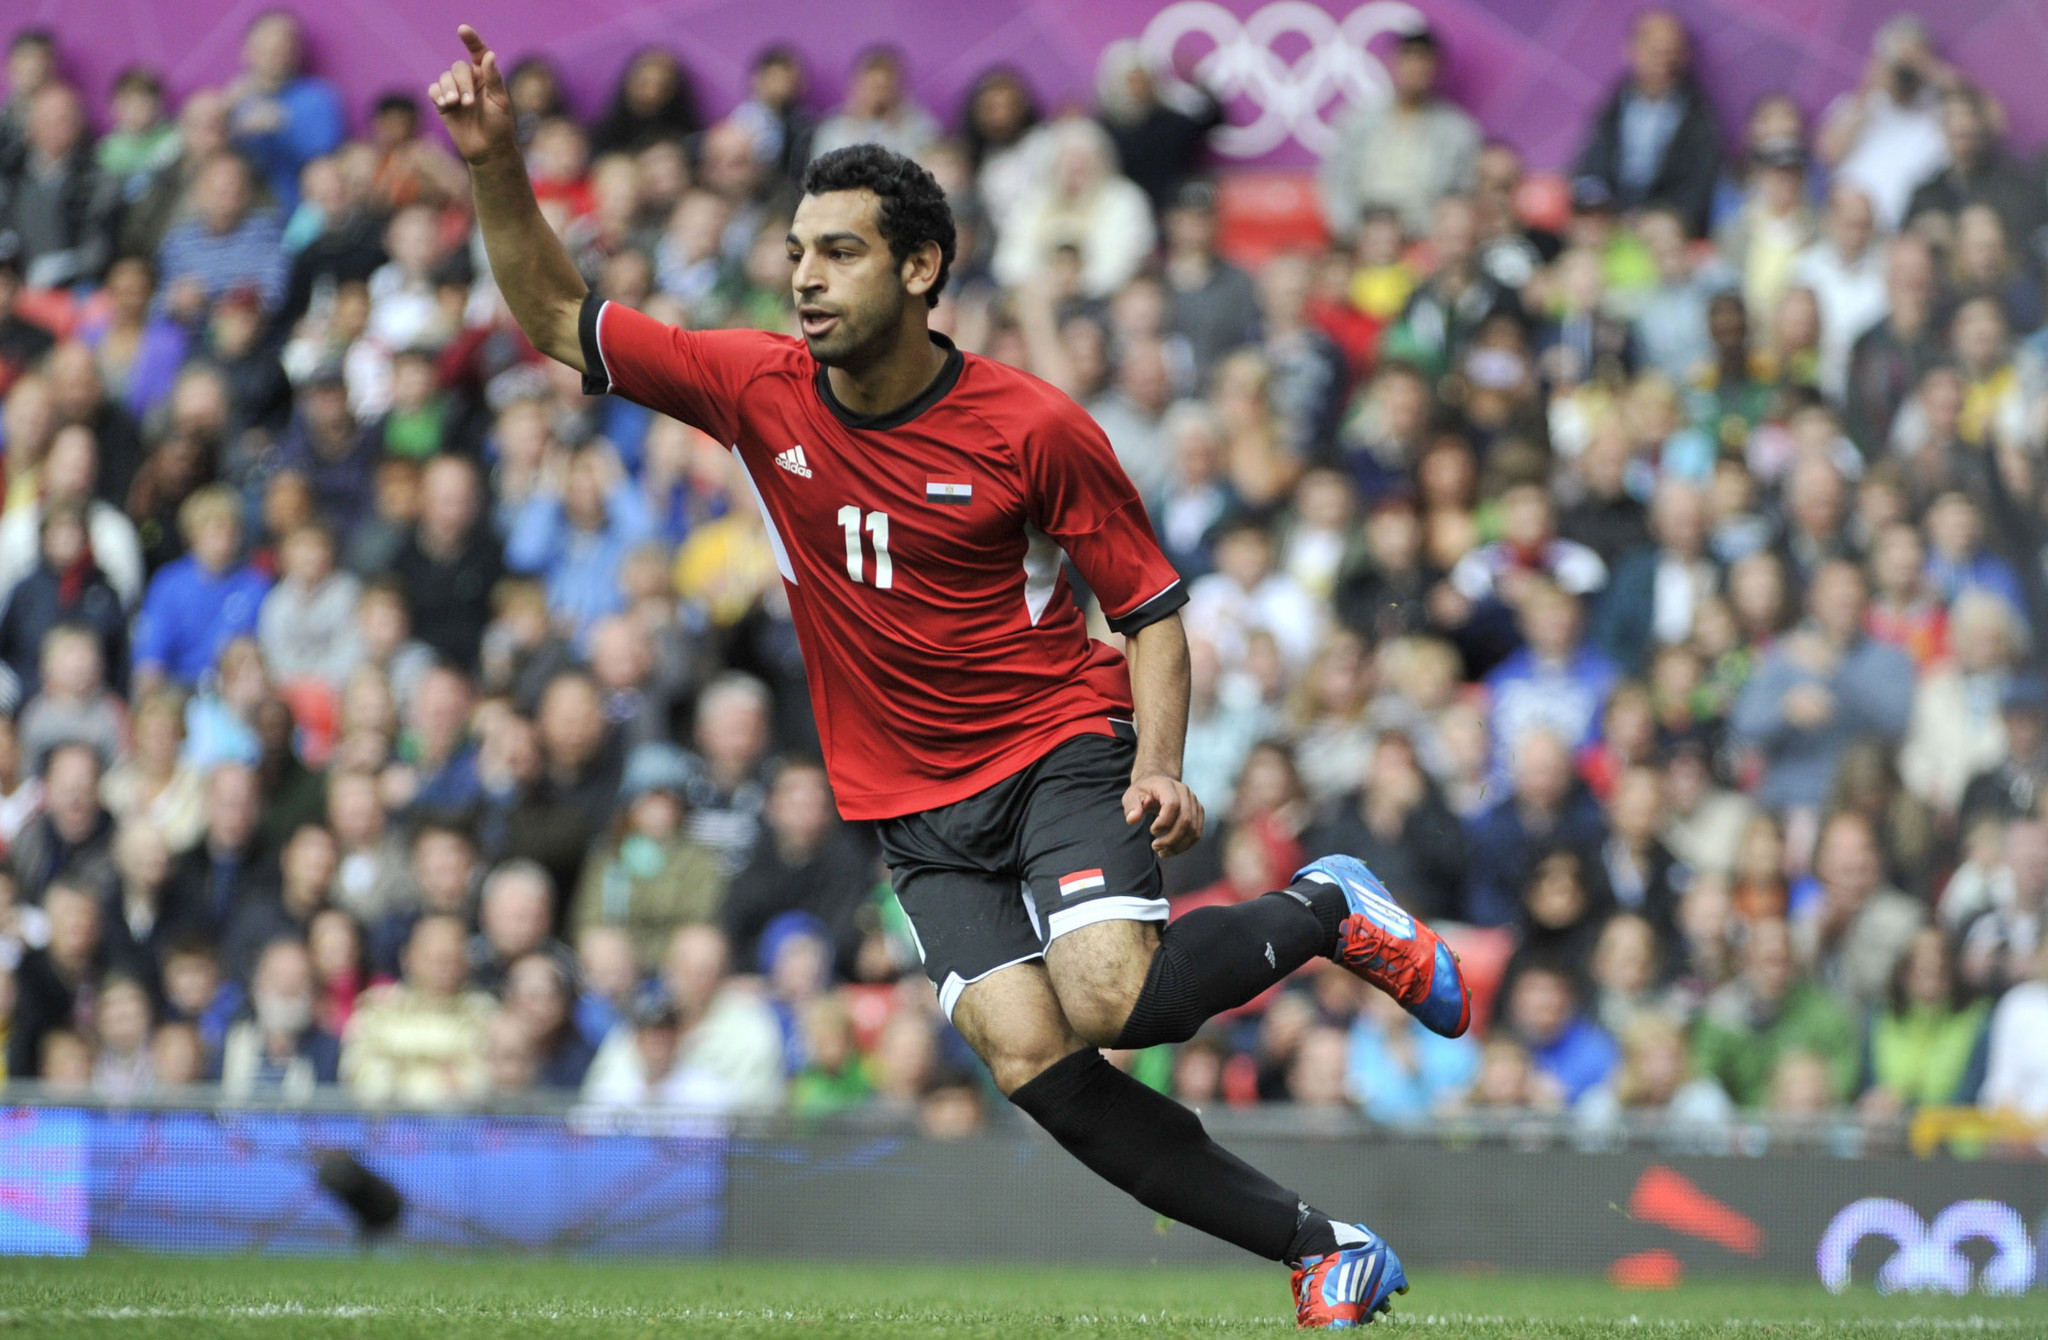 Mohamed Salah scored three goals for Egypt during the London 2012 Olympic Games ©Getty Images